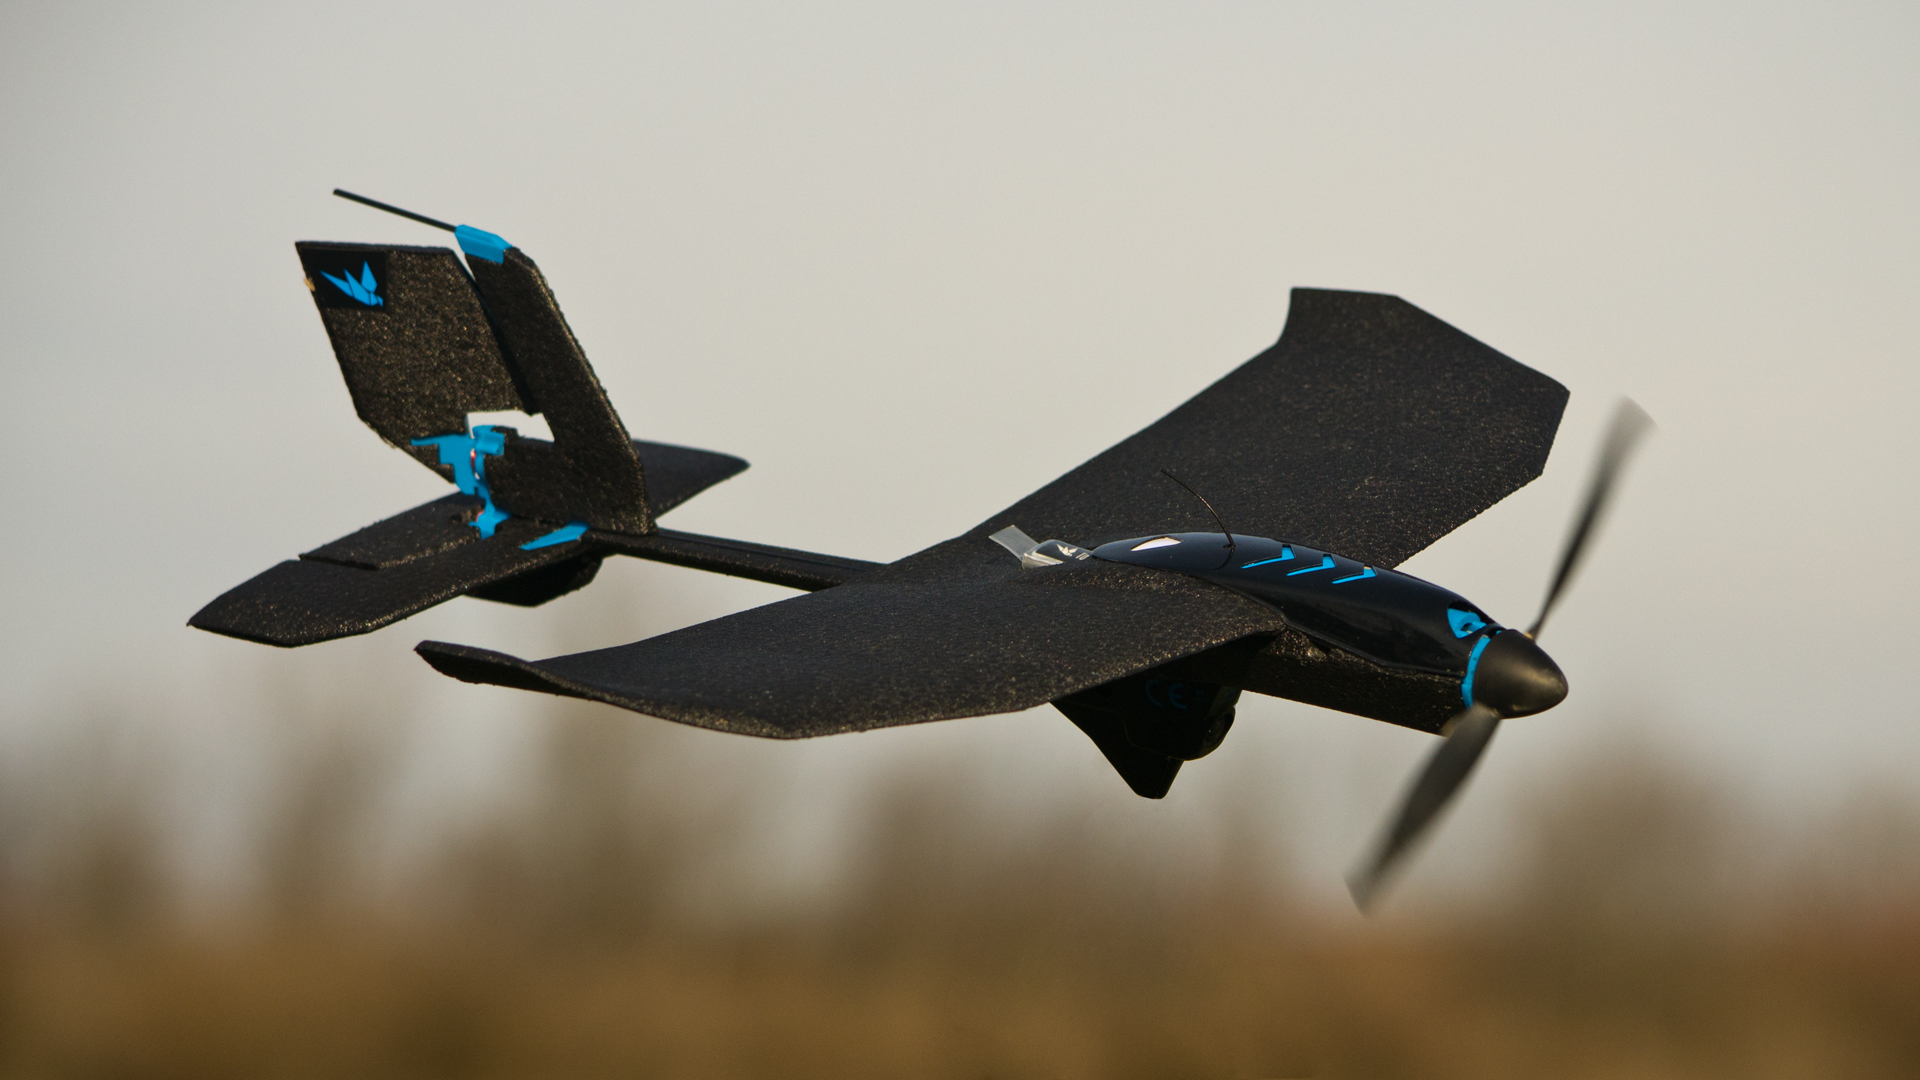 Testing: SmartPlane Pro FPV Fixed-Wing RC - Tested